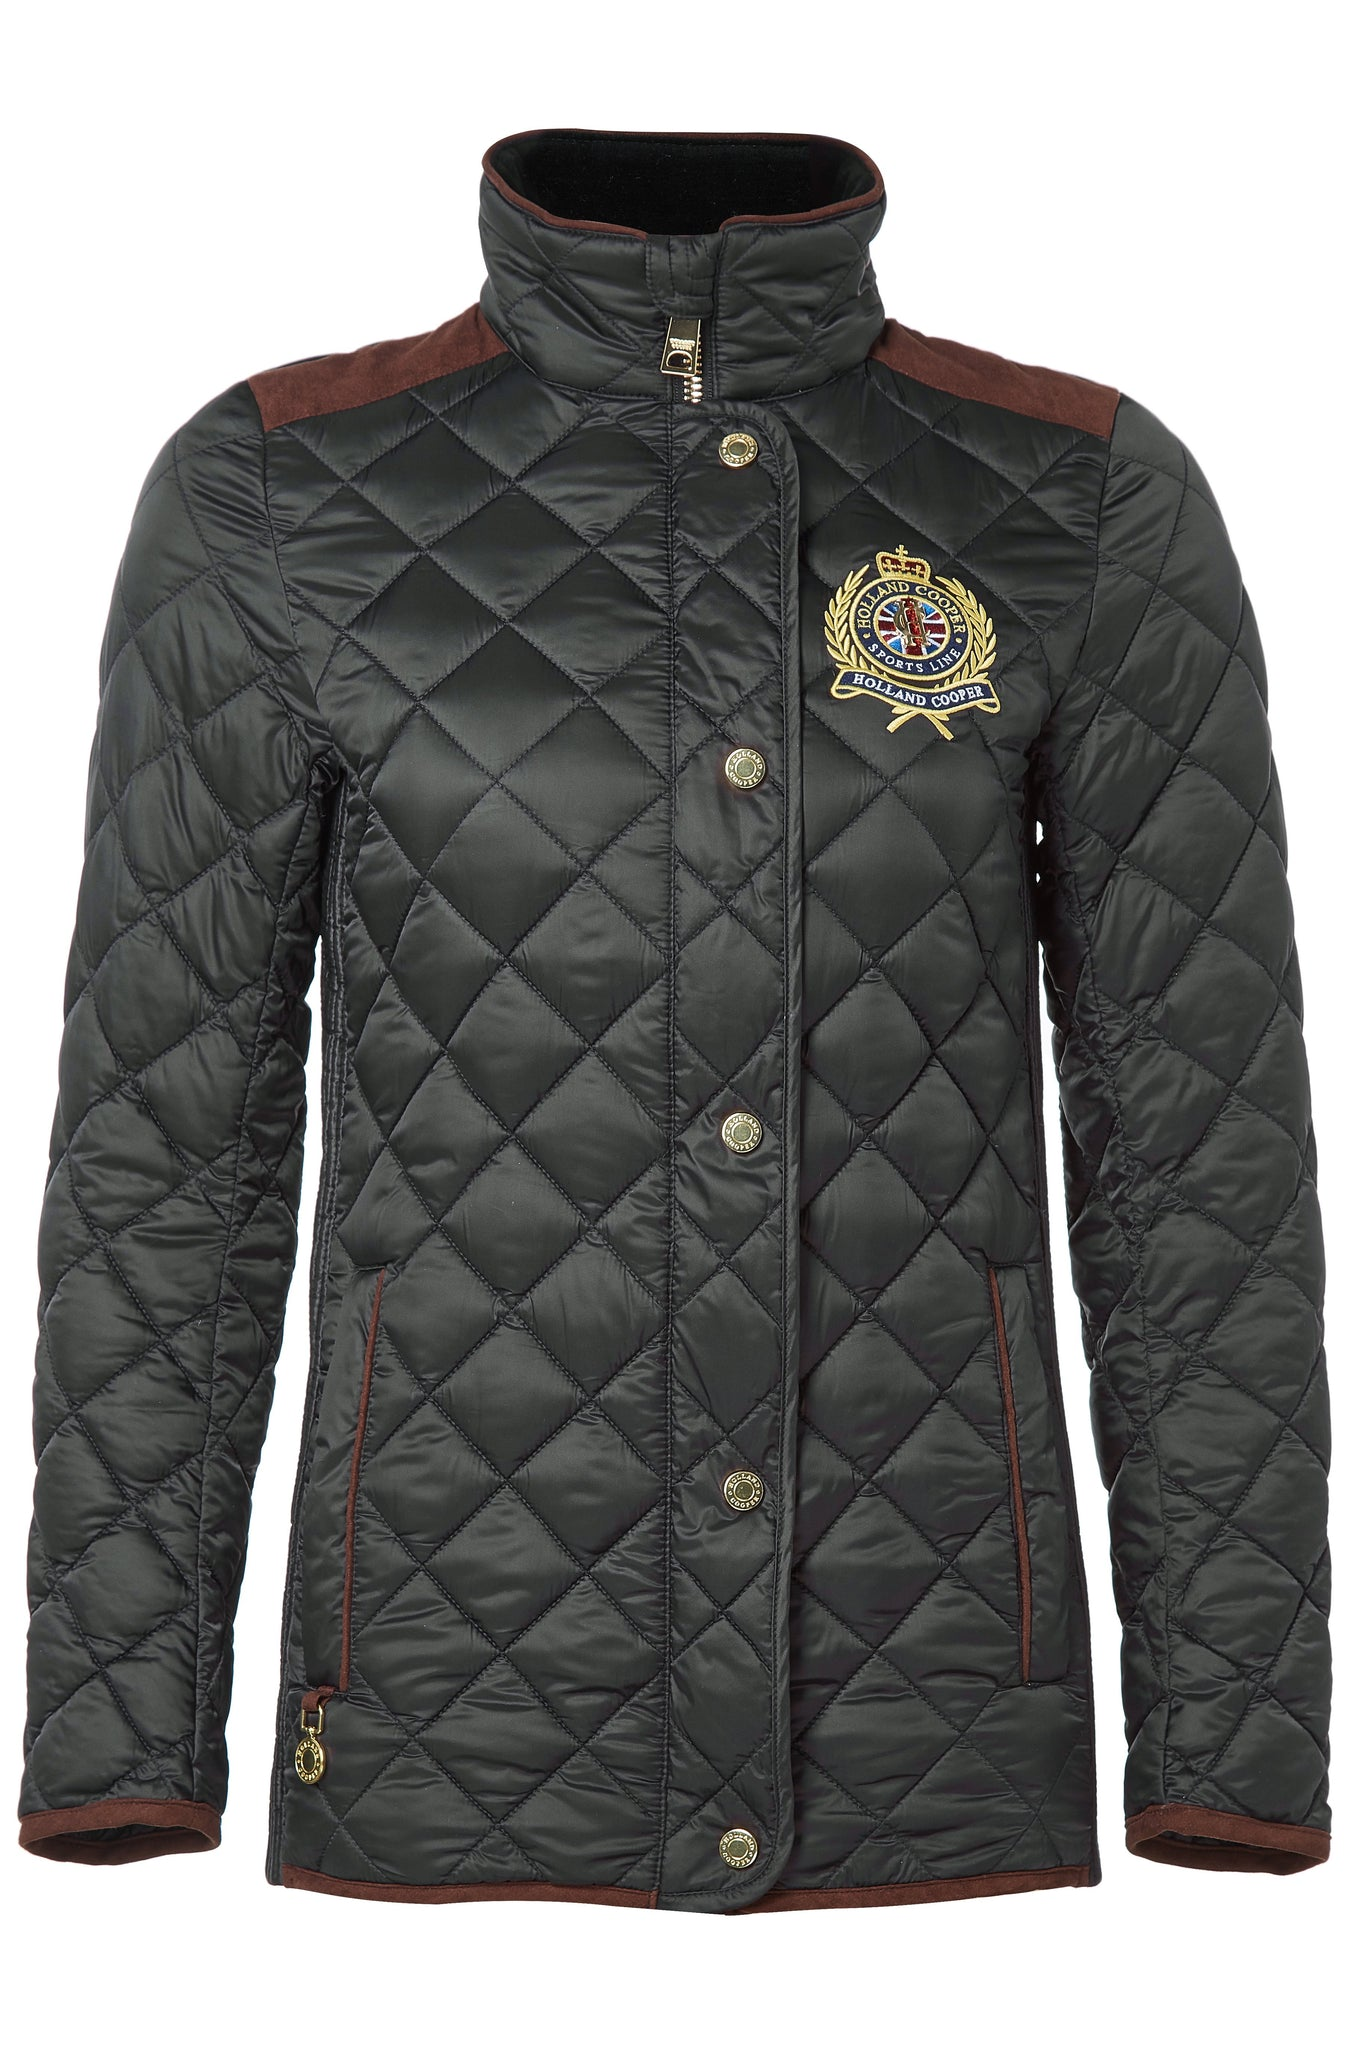 Diamond Quilt Jacket (Khaki)